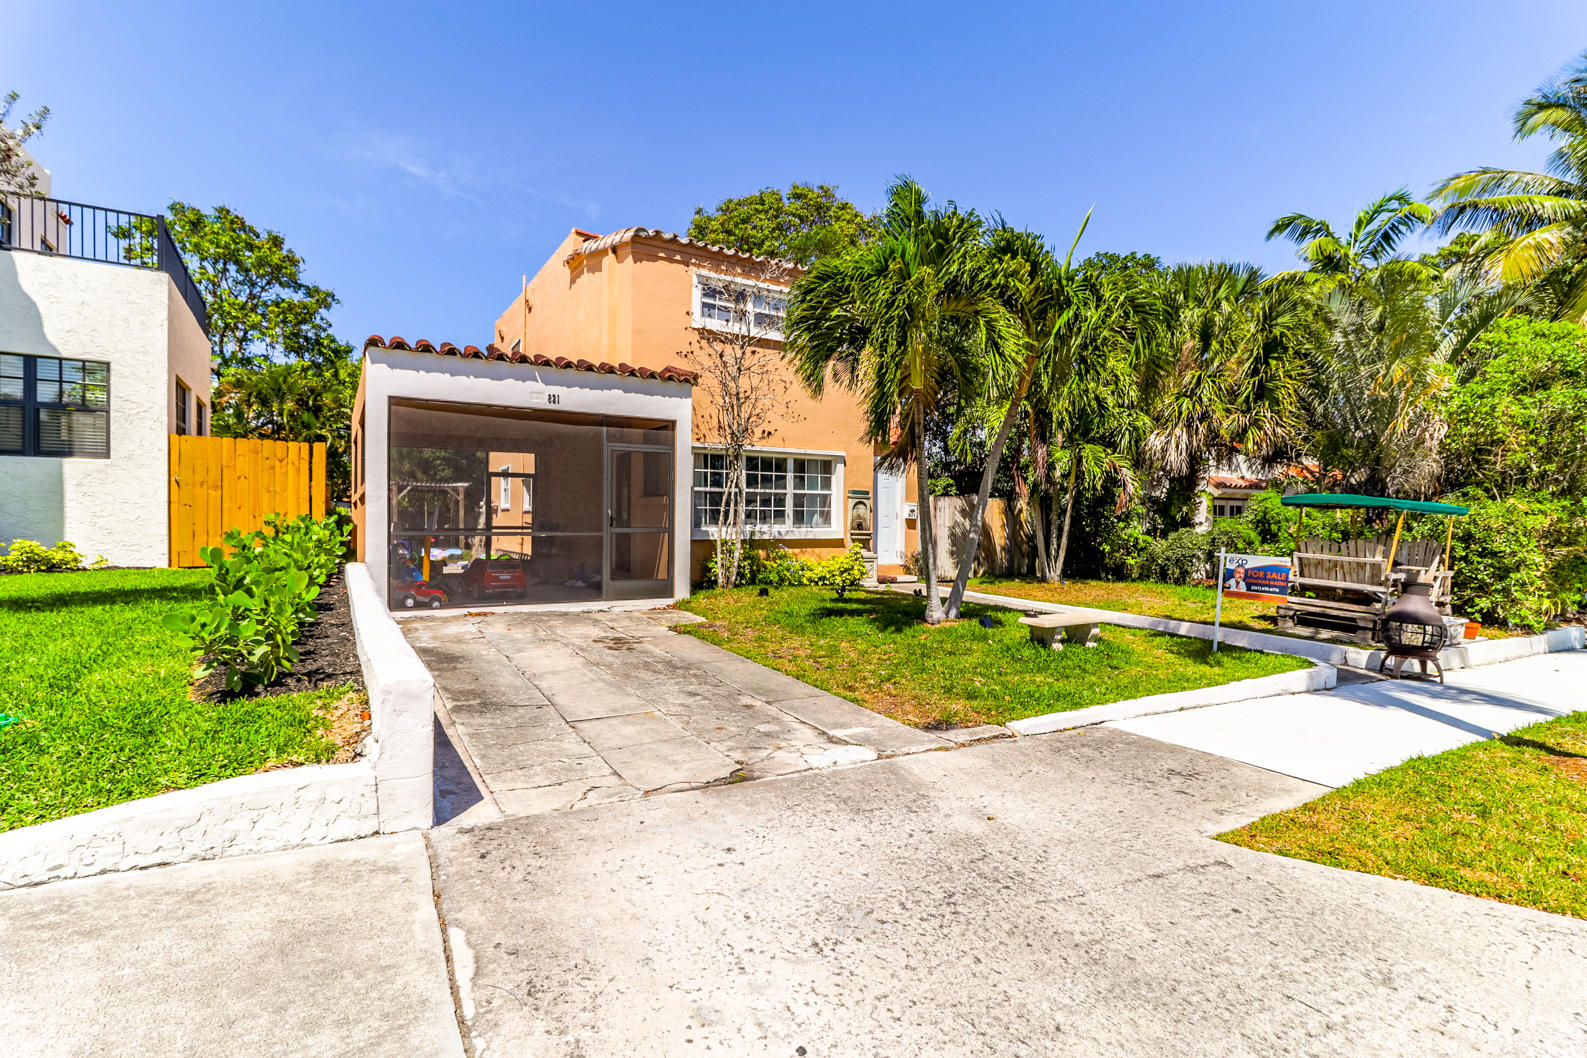 Home for sale in Northwood Historic West Palm Beach Florida